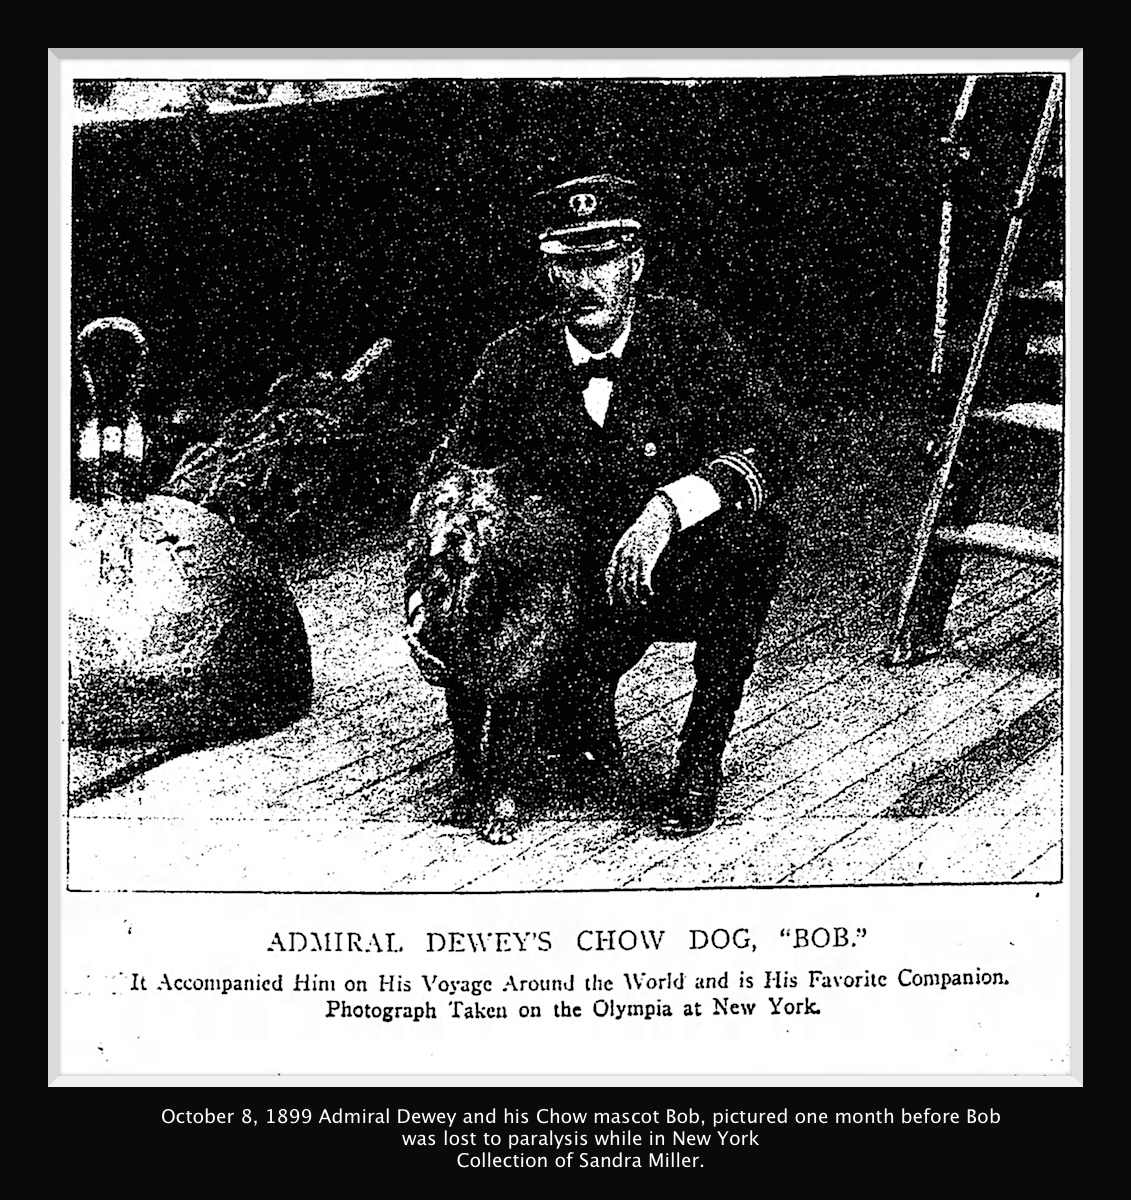 Admiral Dewey and Bob photograph Oct 8 1899 one month before Bob died . On Olympia in New York